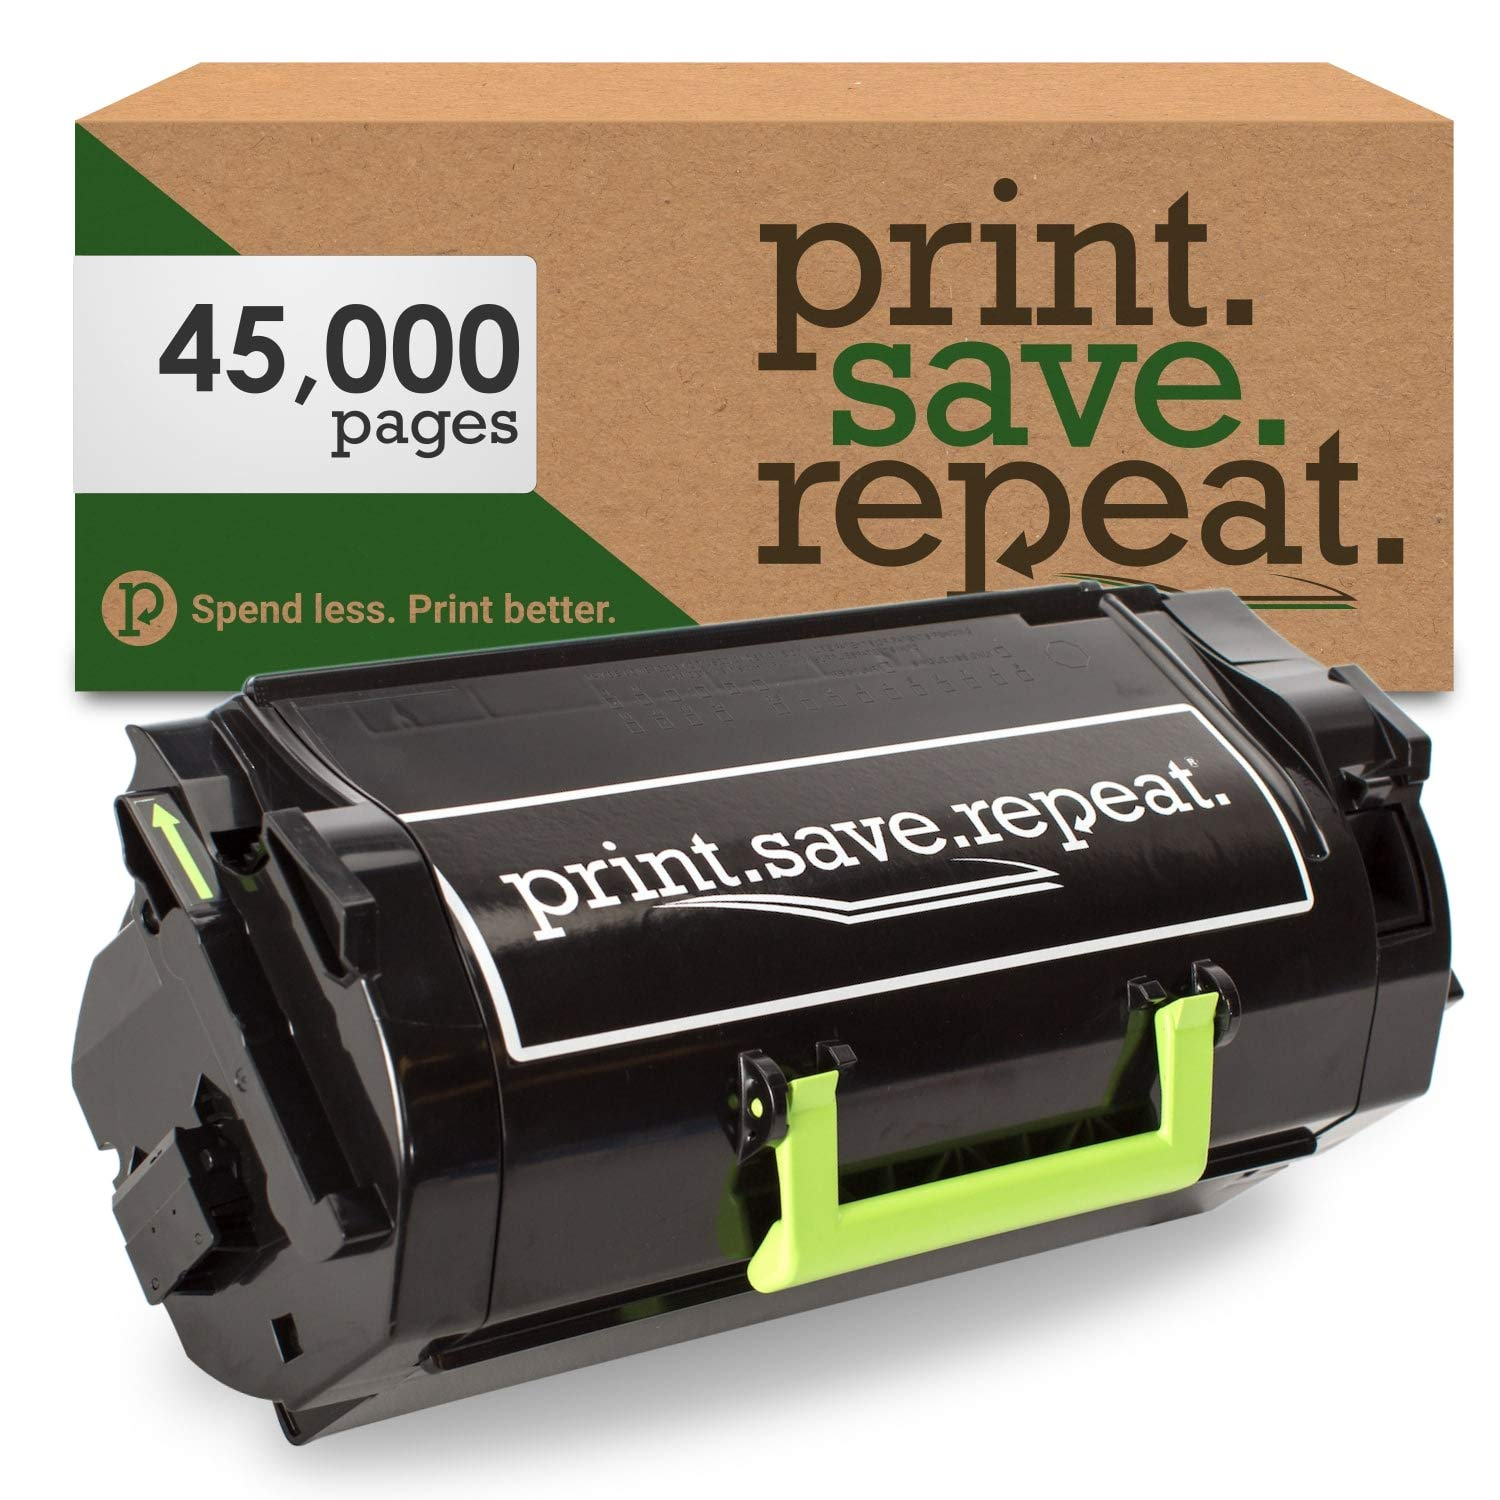 Print.Save.Repeat. Lexmark 520XA Extra High Yield Remanufactured Toner Cartridge for MS711, MS811, MS812 [45,000 Pages]